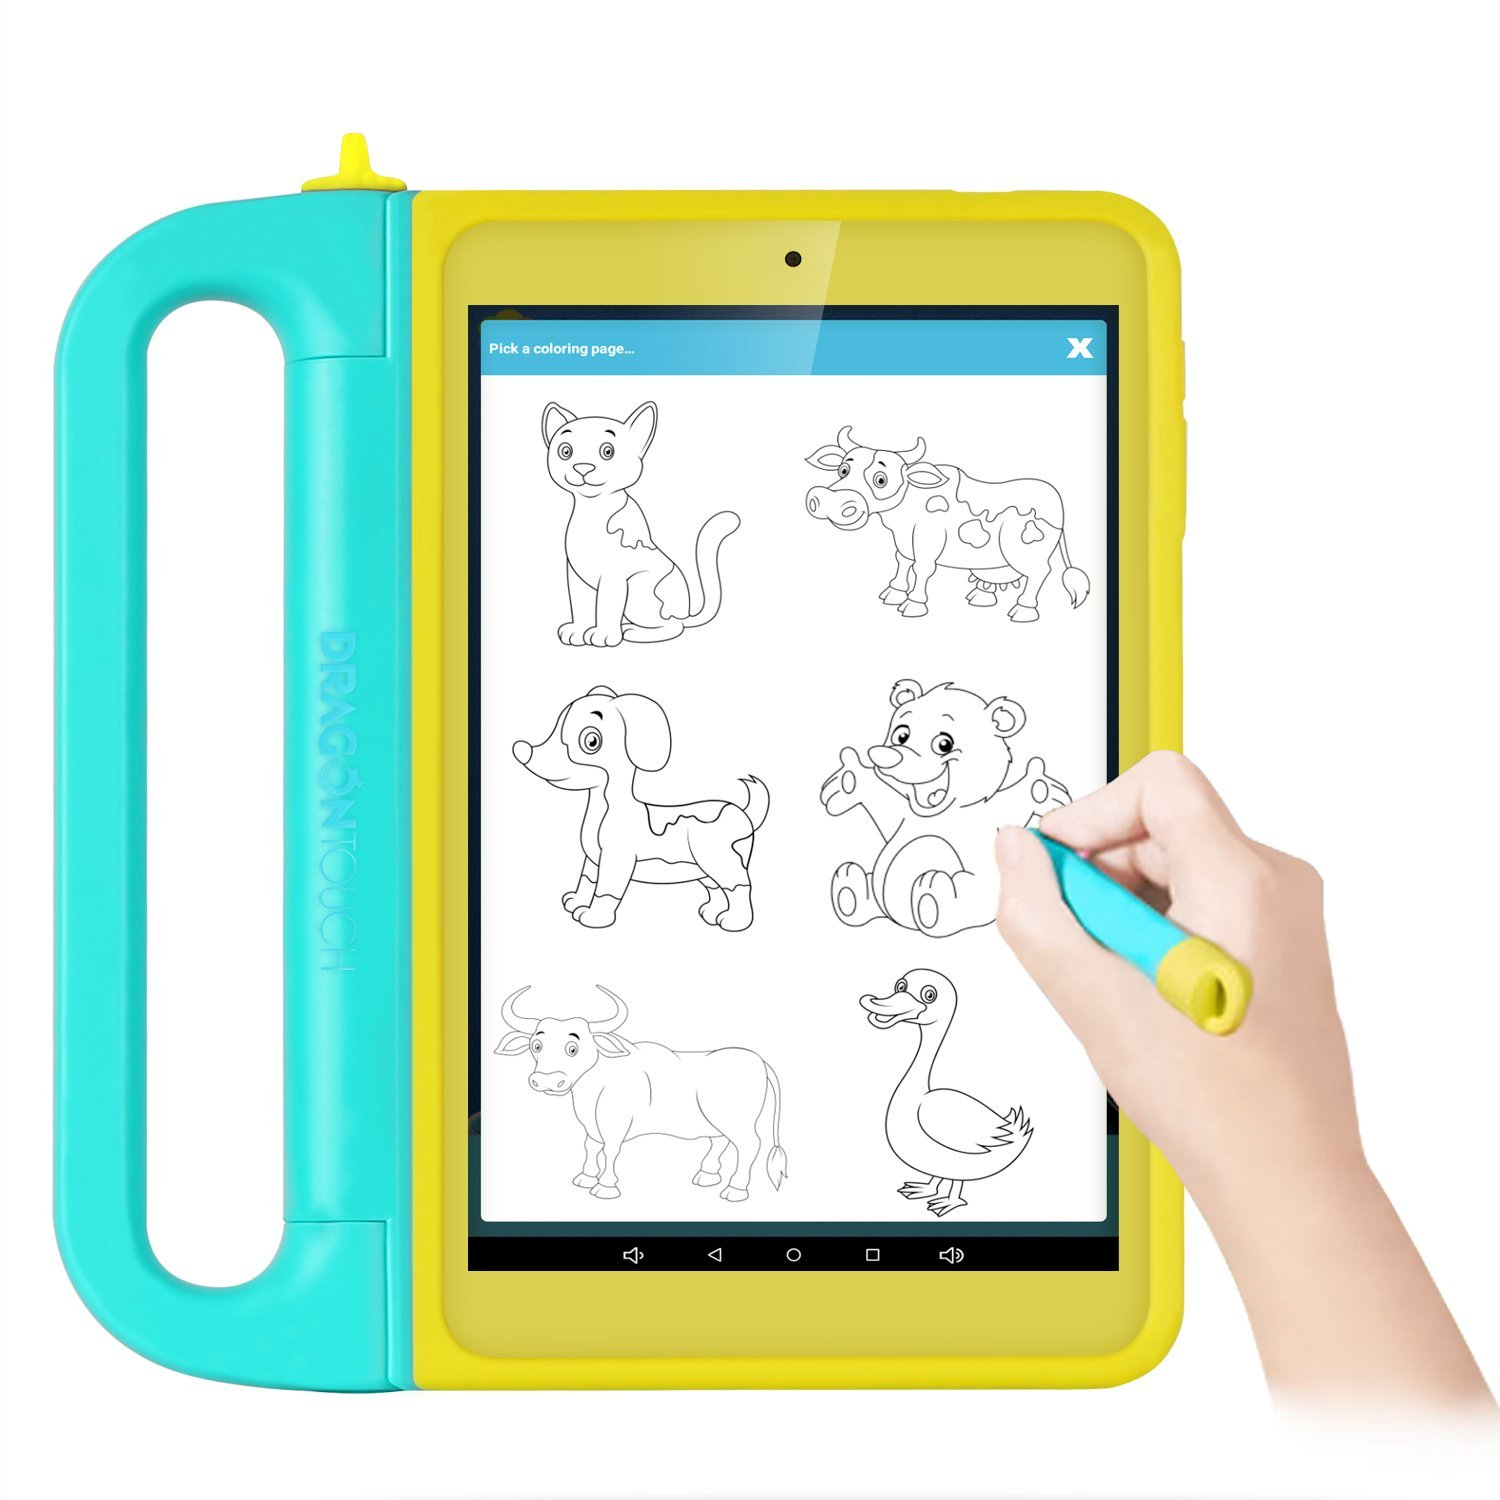 DragonTouch K8 8inch Kids Tablet Kidoz Pre-Installed 2GB RAM 16GB Nand  Flash IPS Display Android 6 0 Marshmallow Android Tablet